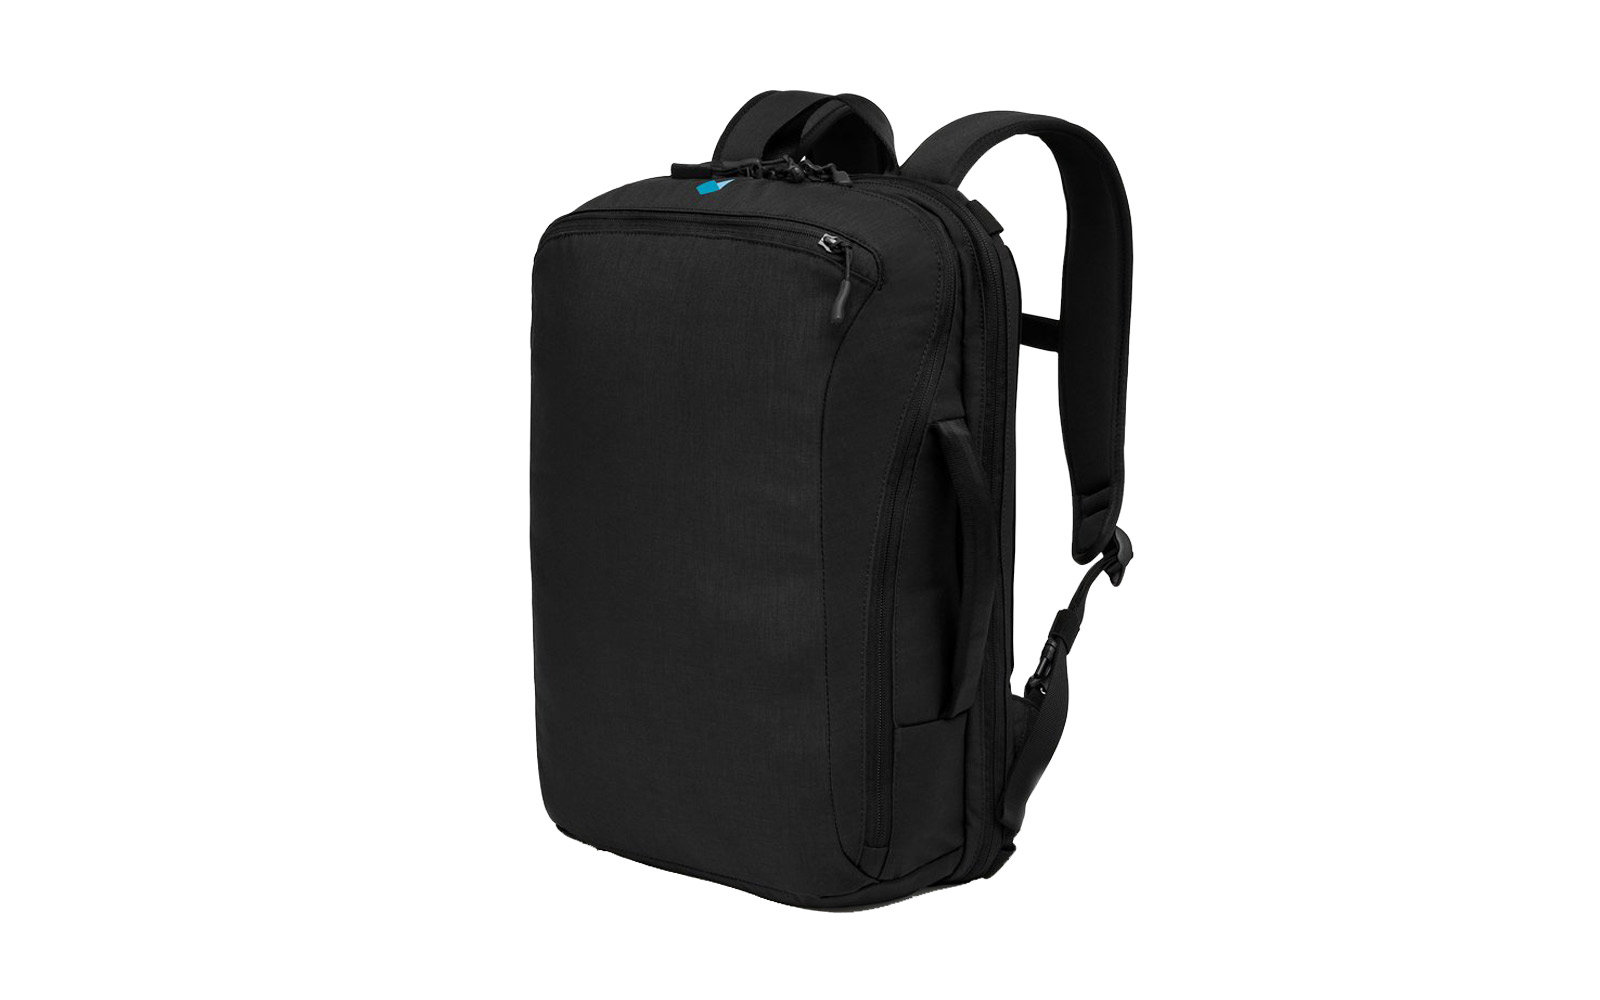 417c665043 Best Convertible Laptop Backpack  Minaal Daily Bag